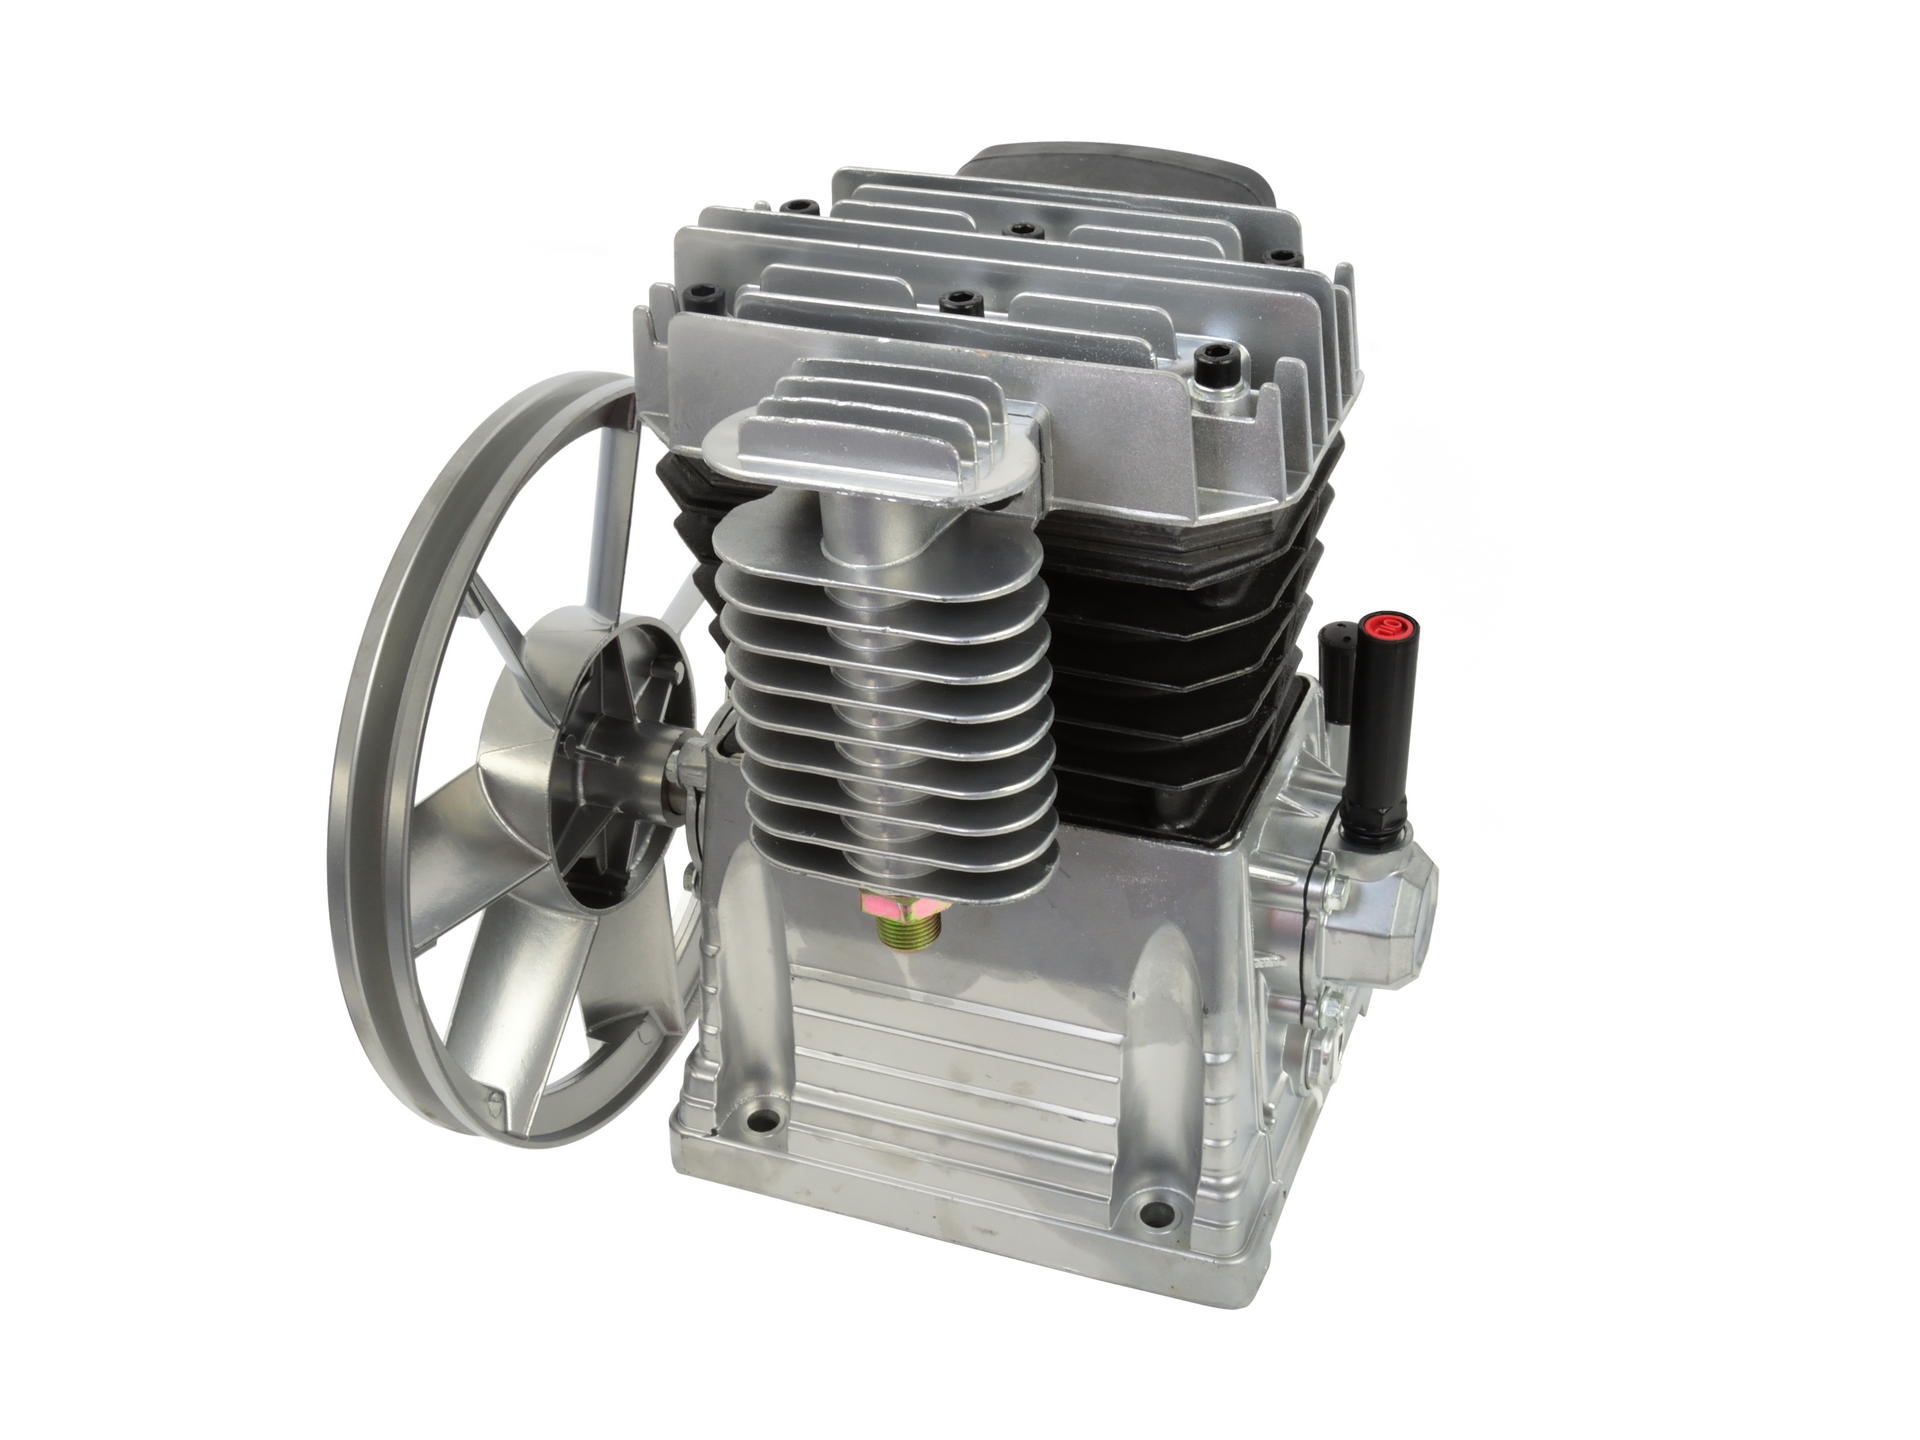 Air compressor pump R2 400l/min 8bar